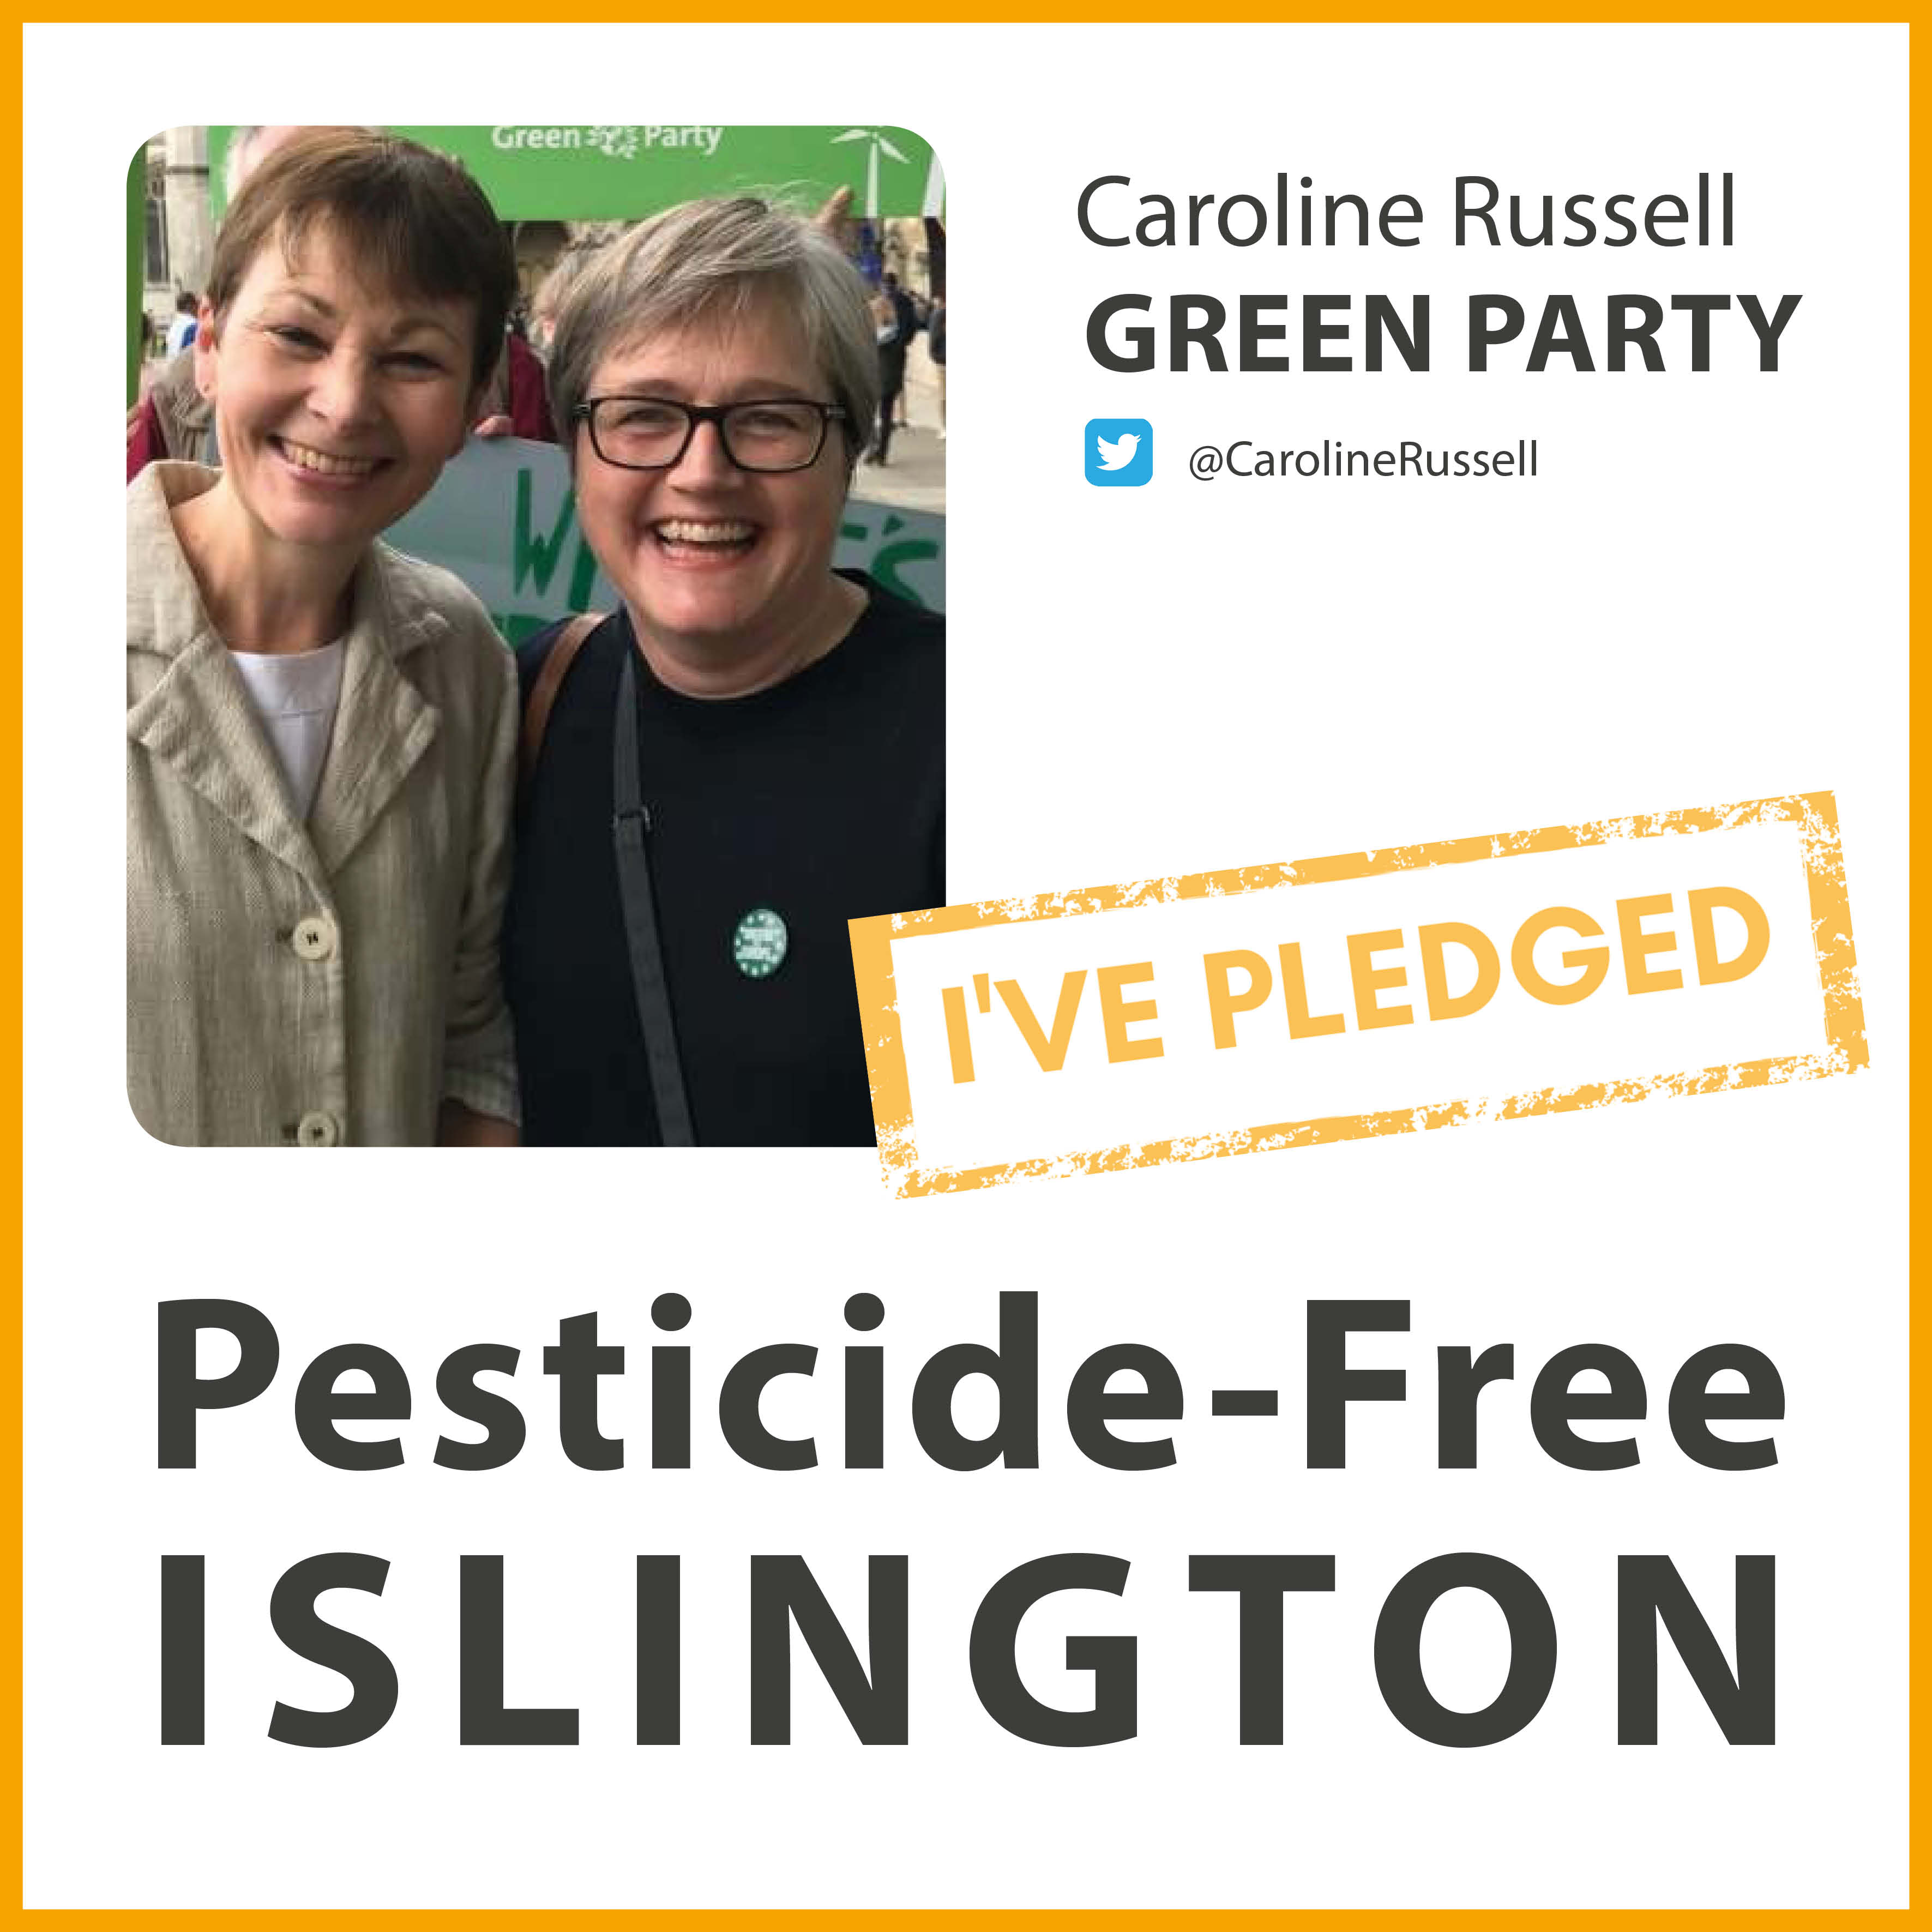 Caroline Russell has taken the pesticide-free pledge in Islington